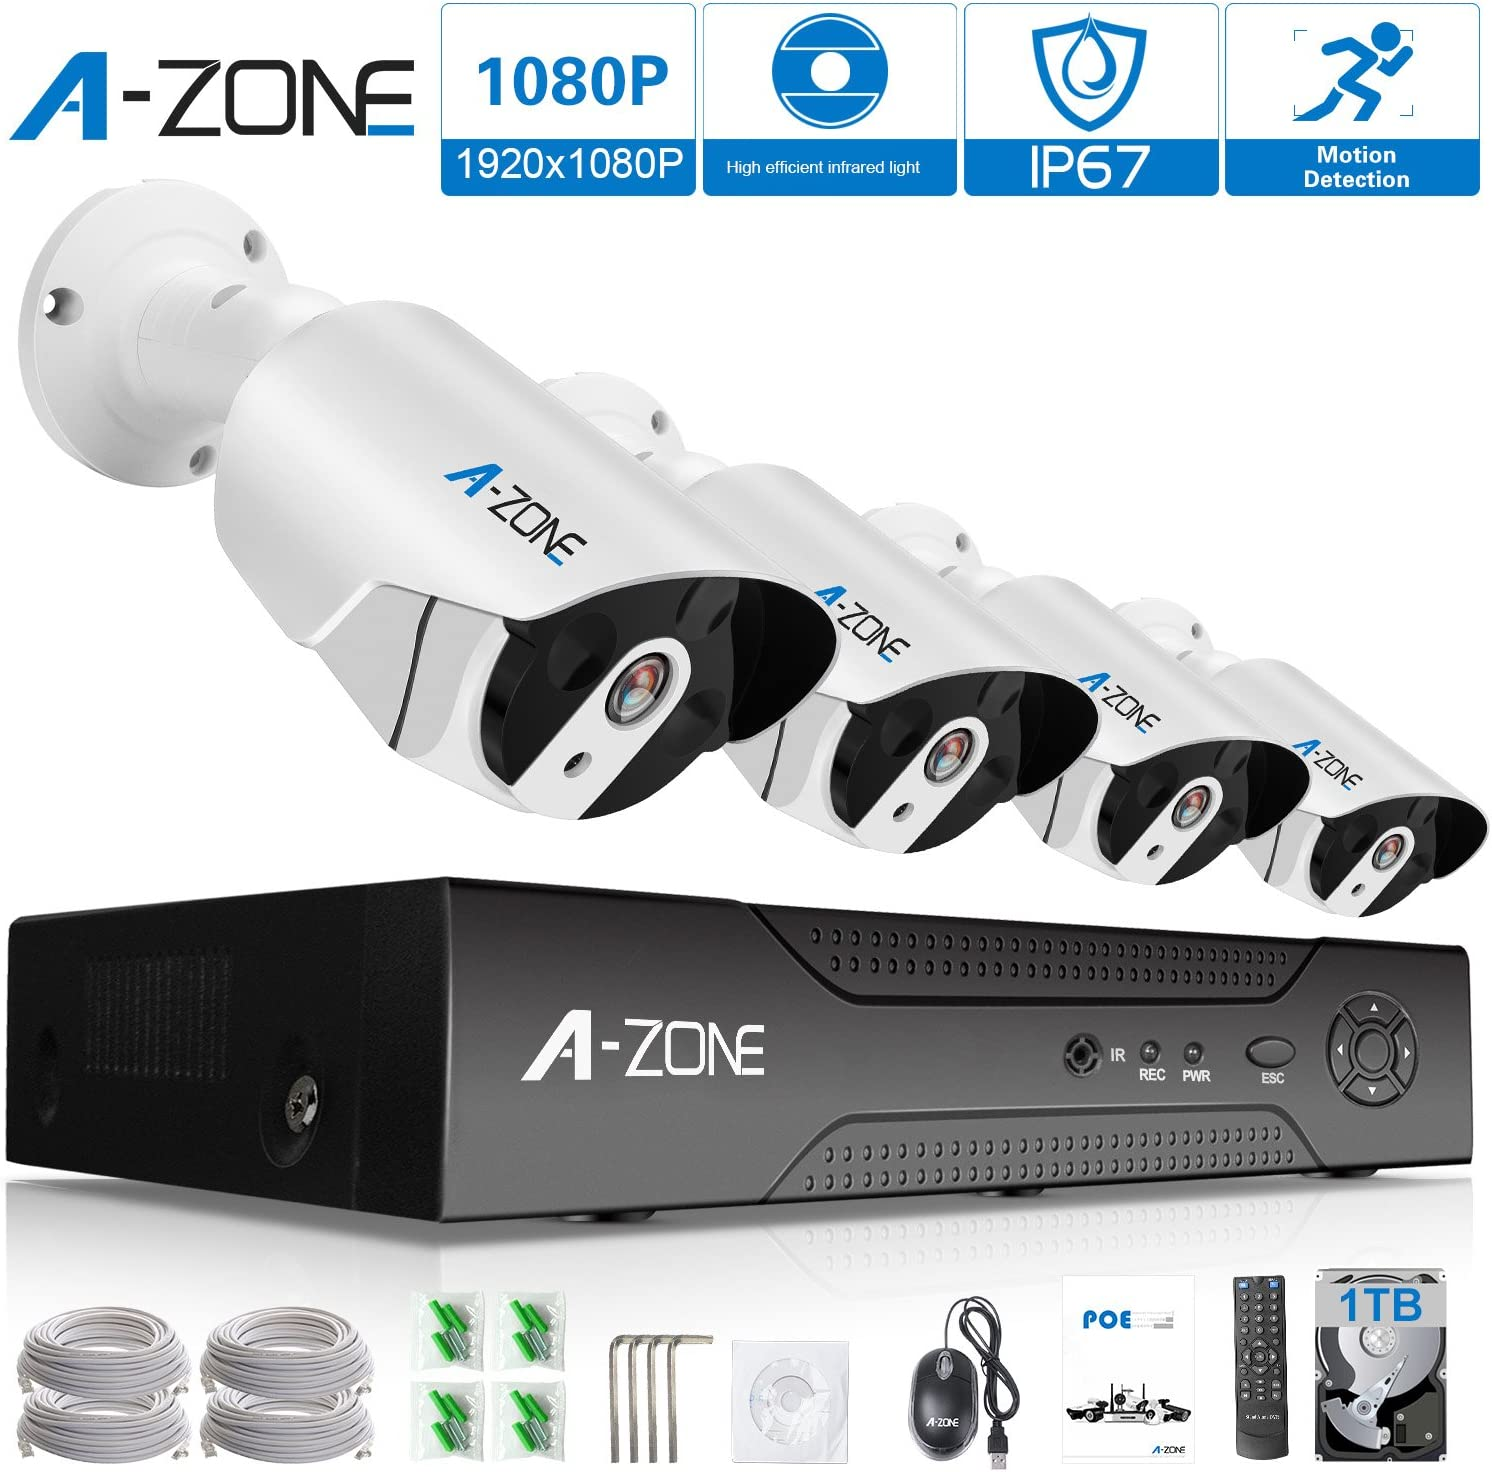 Security Camera System PoE – A-ZONE 4CH 1080P Bullet IP PoE System, 4 Outdoor Indoor 3.6mm Fixed Lens 2.0 Megapixel IP67 Waterproof Cameras,Smart Motion Detection, Free Remote View, 1TB Hard Drive